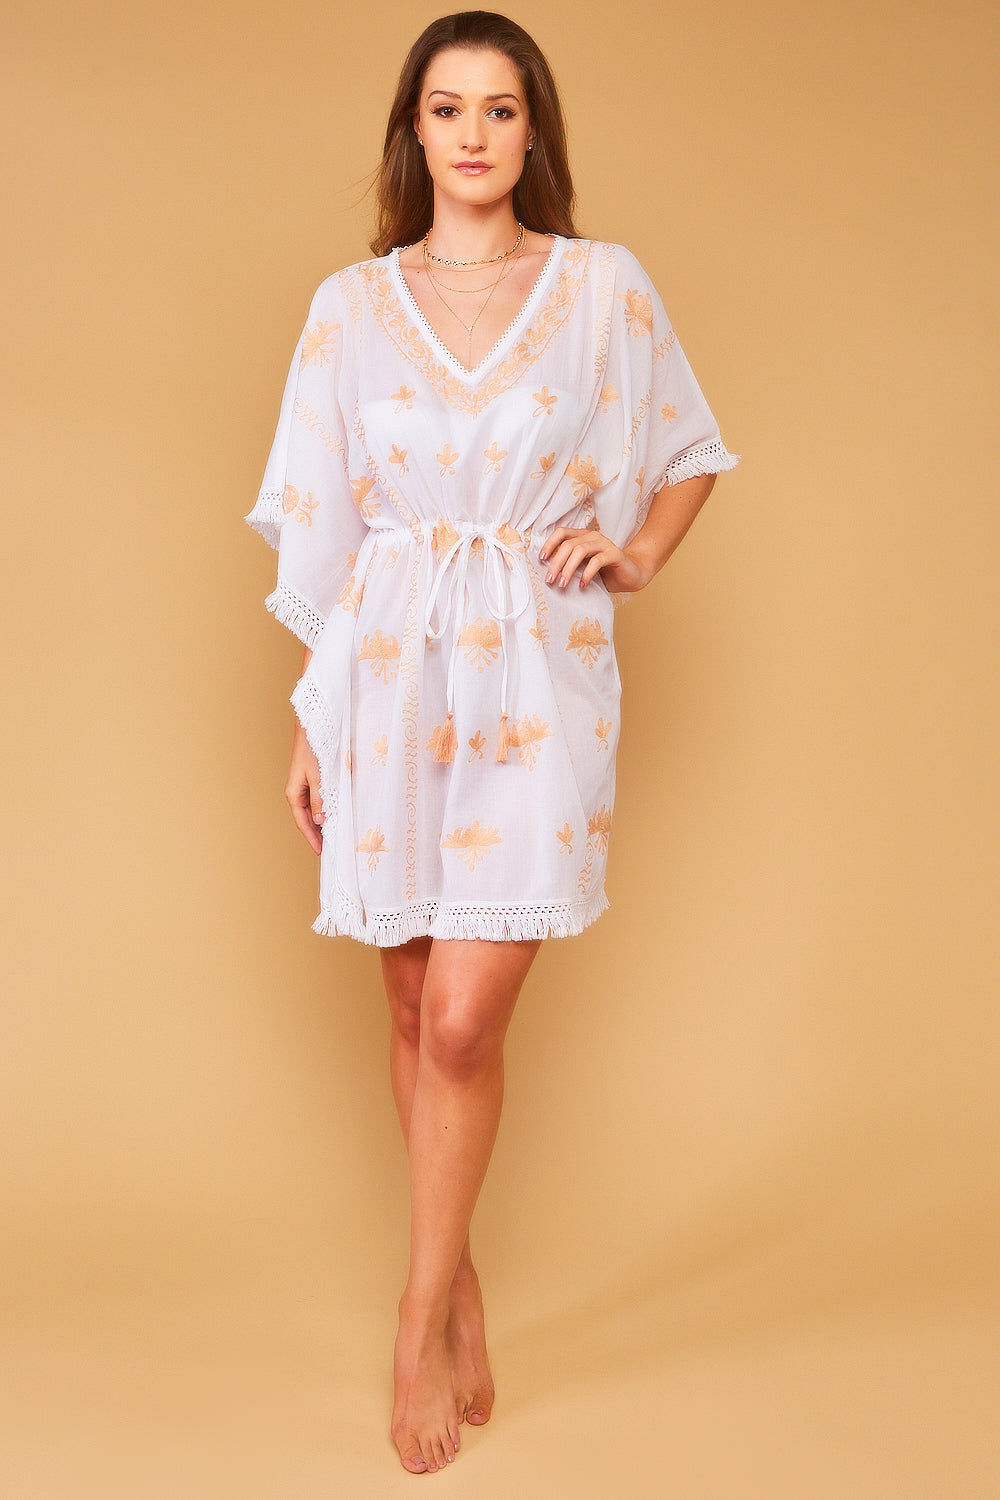 Mykonos Embroidered V-Neck Mini Kaftan in White with Sand